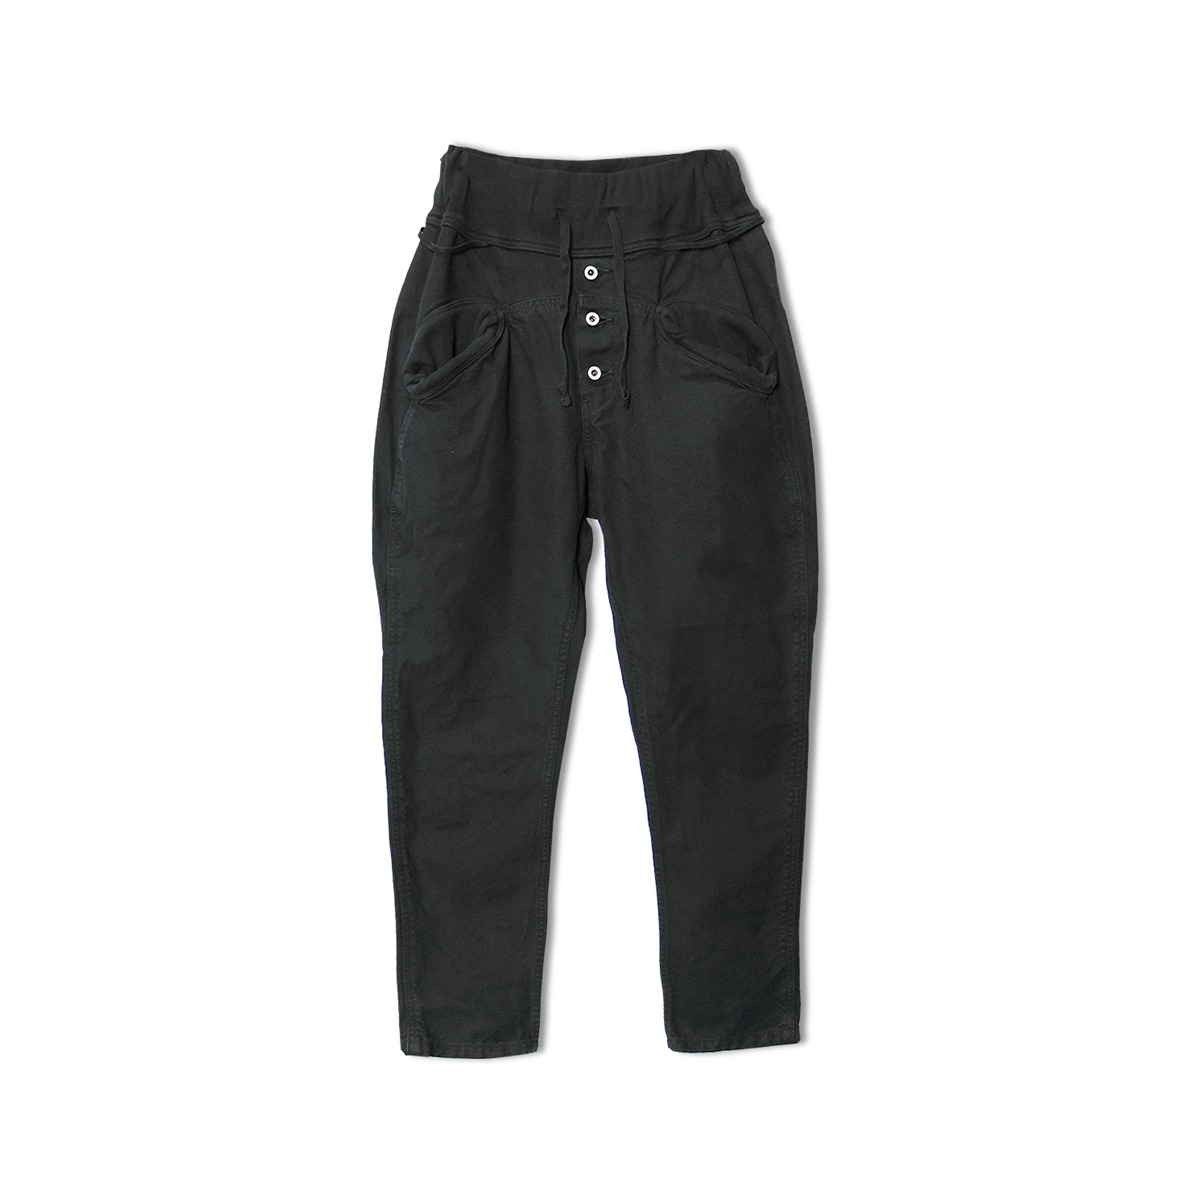 [KAPITAL] CANVAS SAROUEL NOUVELLE PANTS 'BLACK'